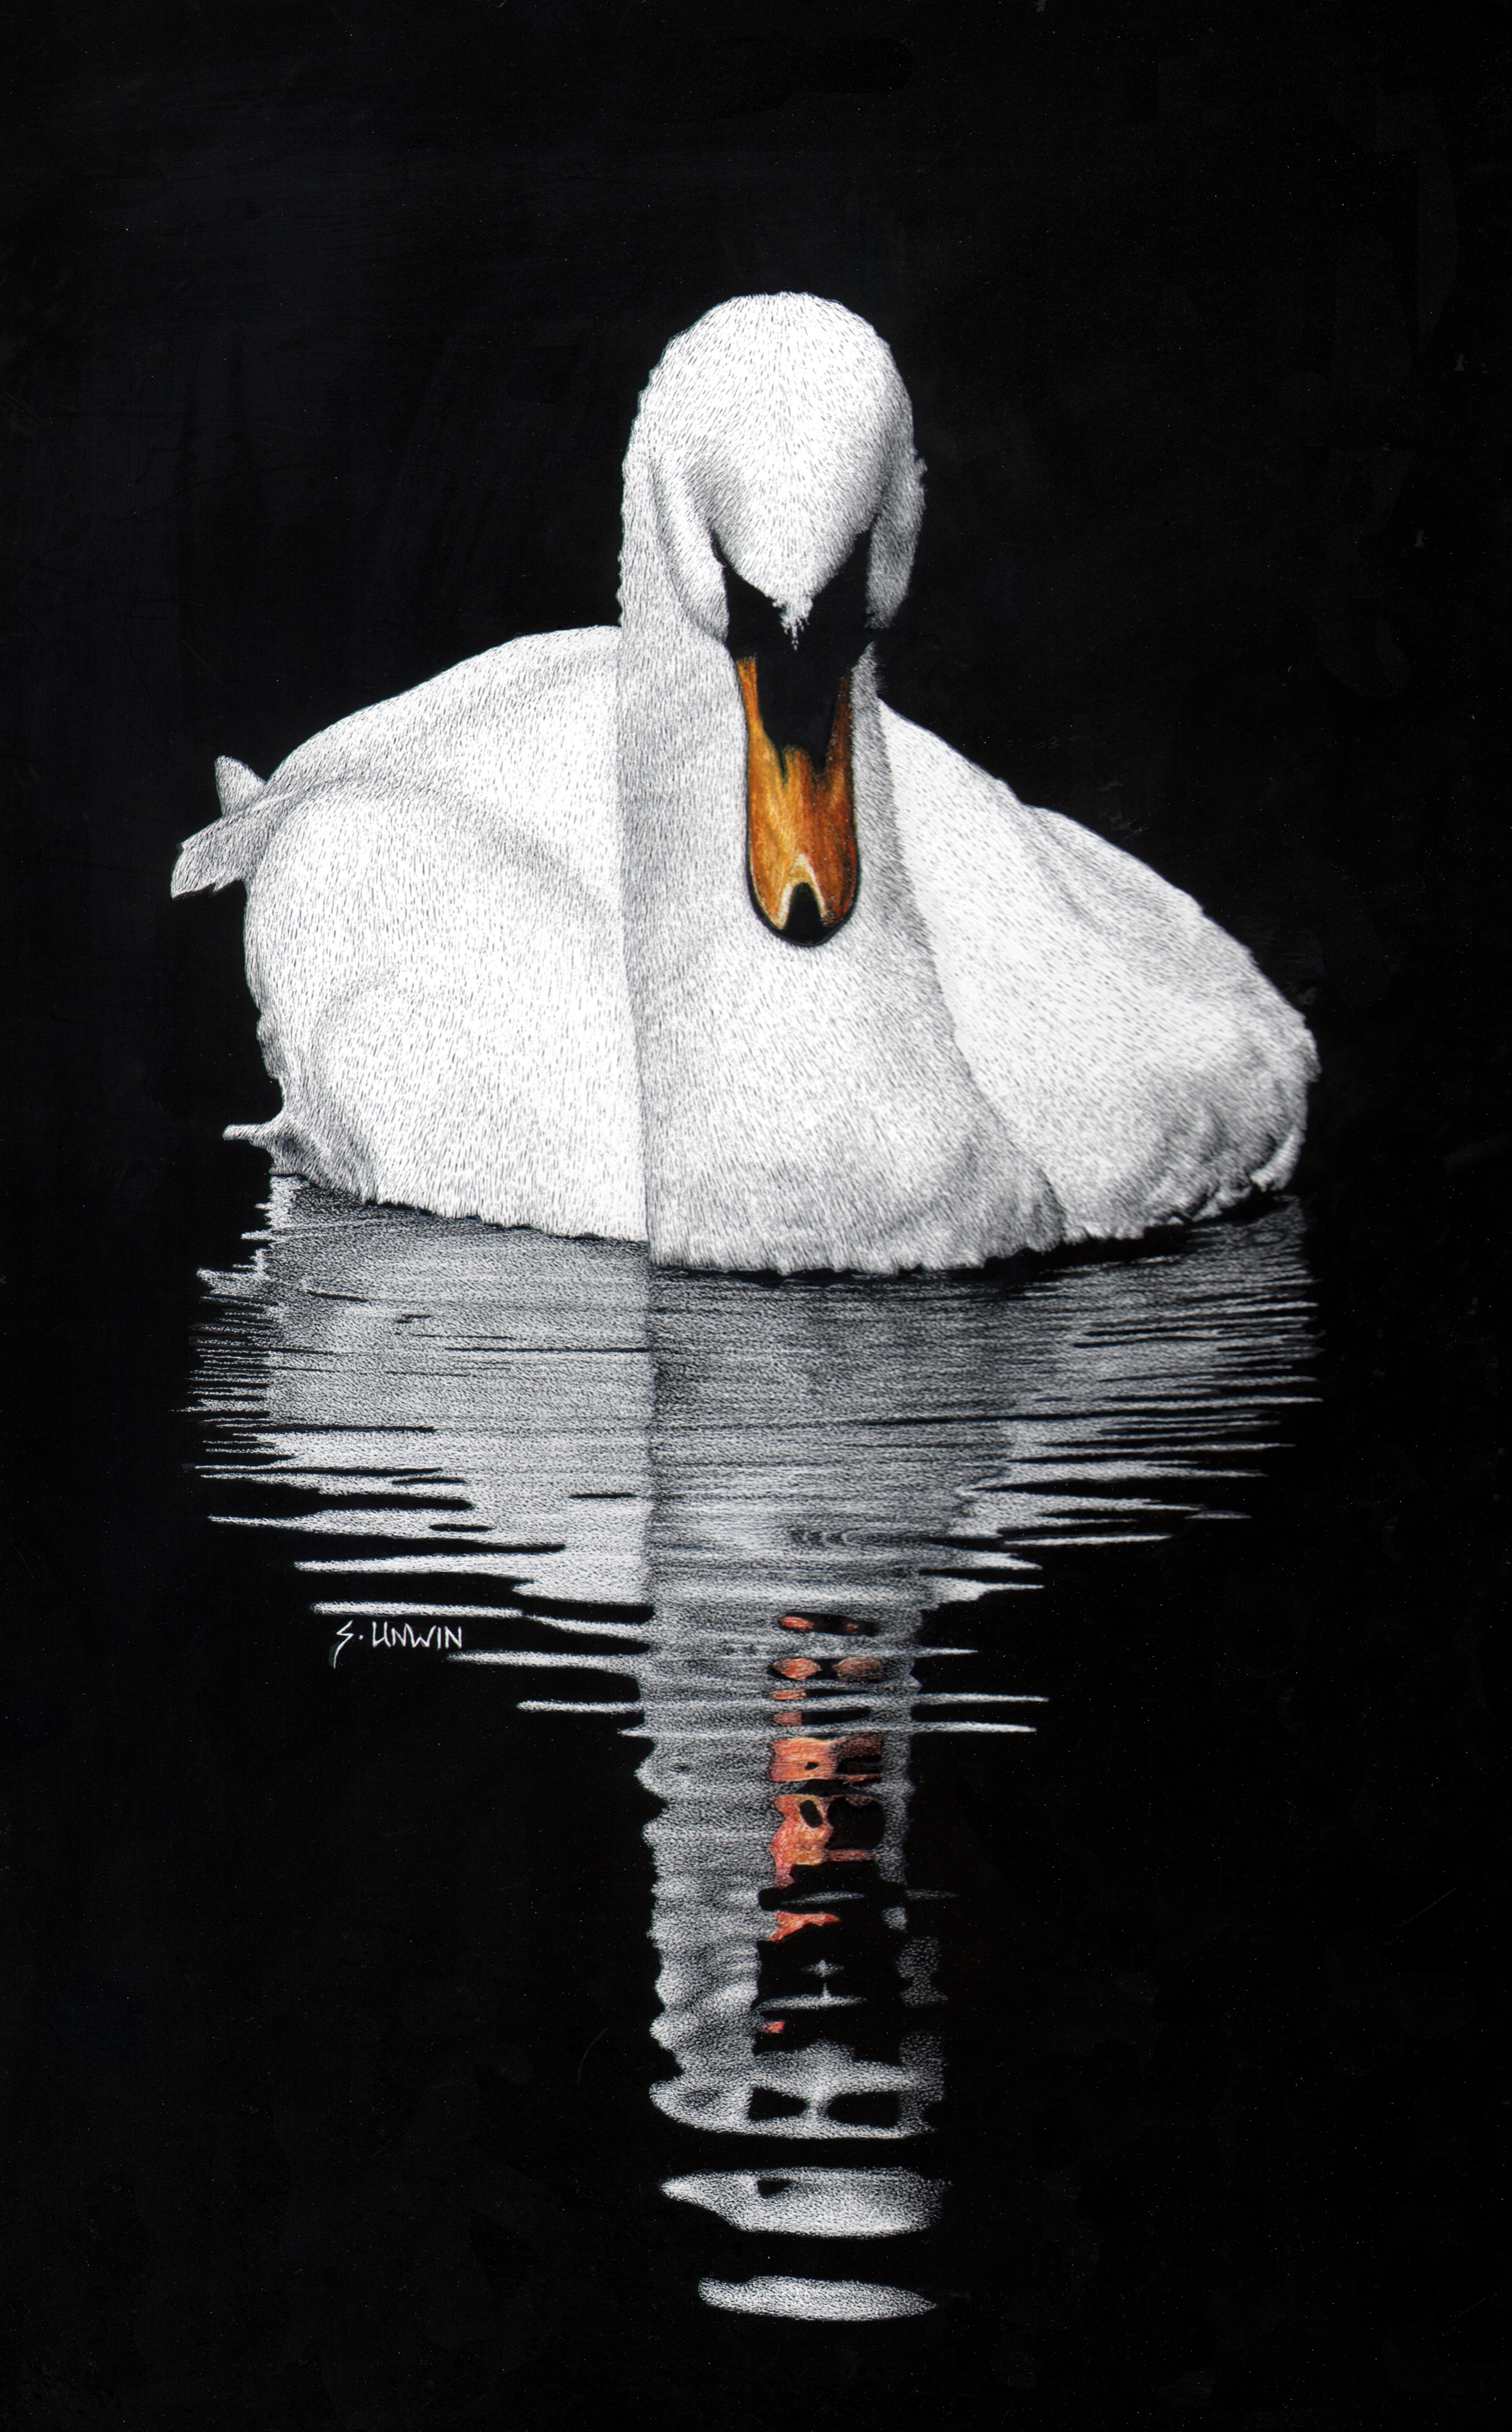 Tranquil_Reflection